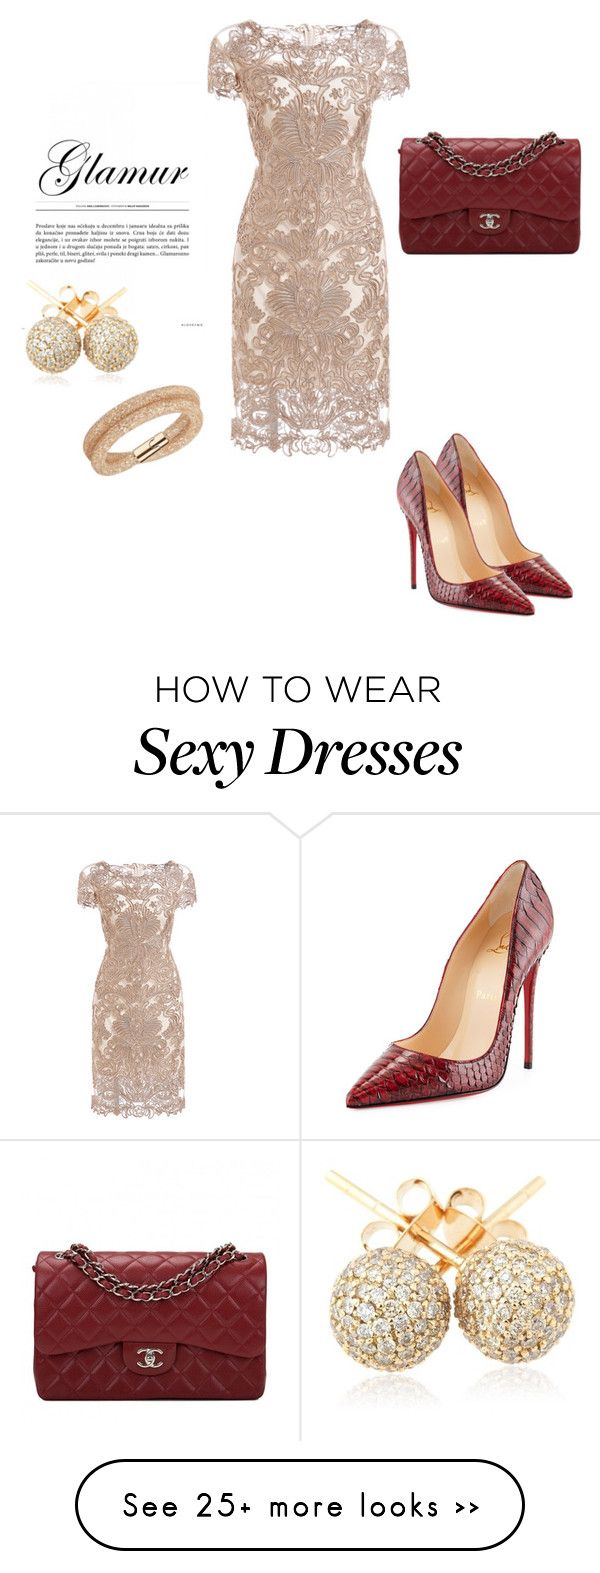 """""""sexy & elegance"""" by littlecanary on Polyvore featuring Christian Louboutin, Chanel, Swarovski and Loushelou"""